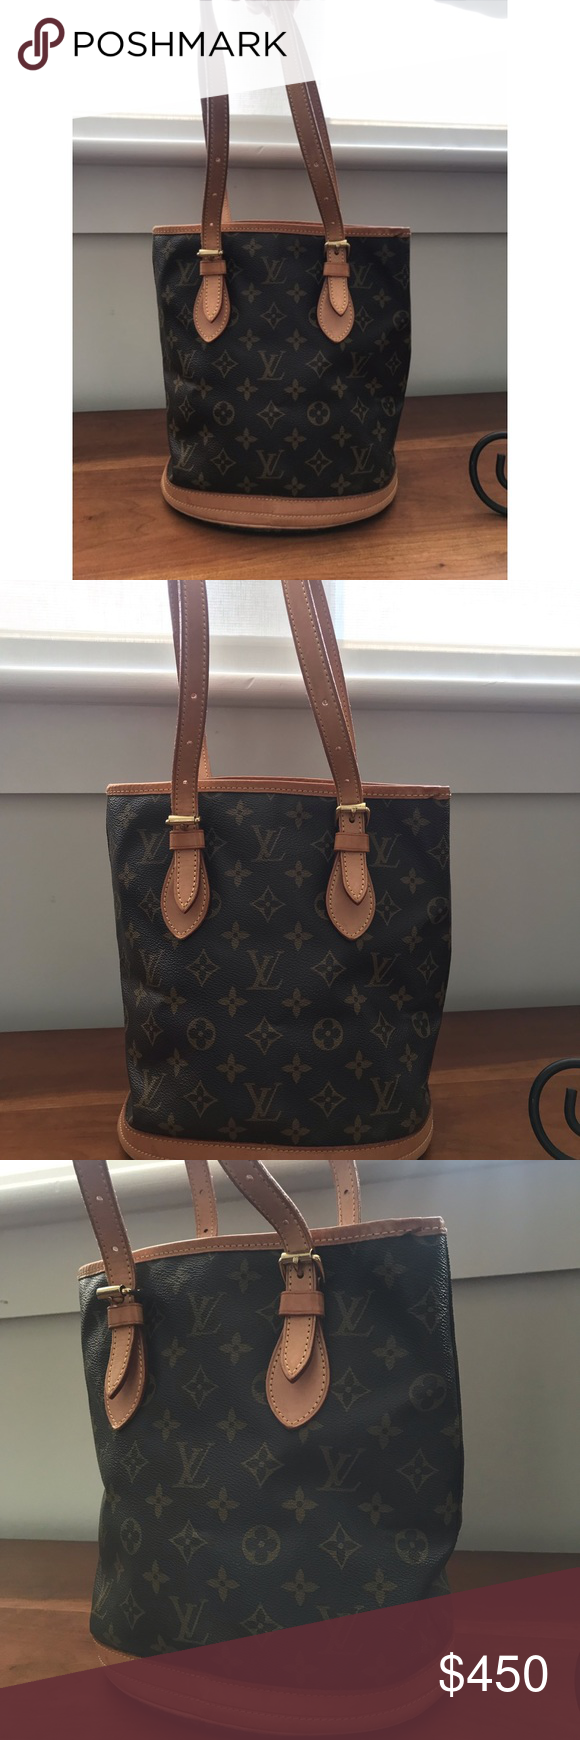 0619debedde Louis Vuitton bag LV vintage bucket bag. Adjustable straps. Signs of wear  are on